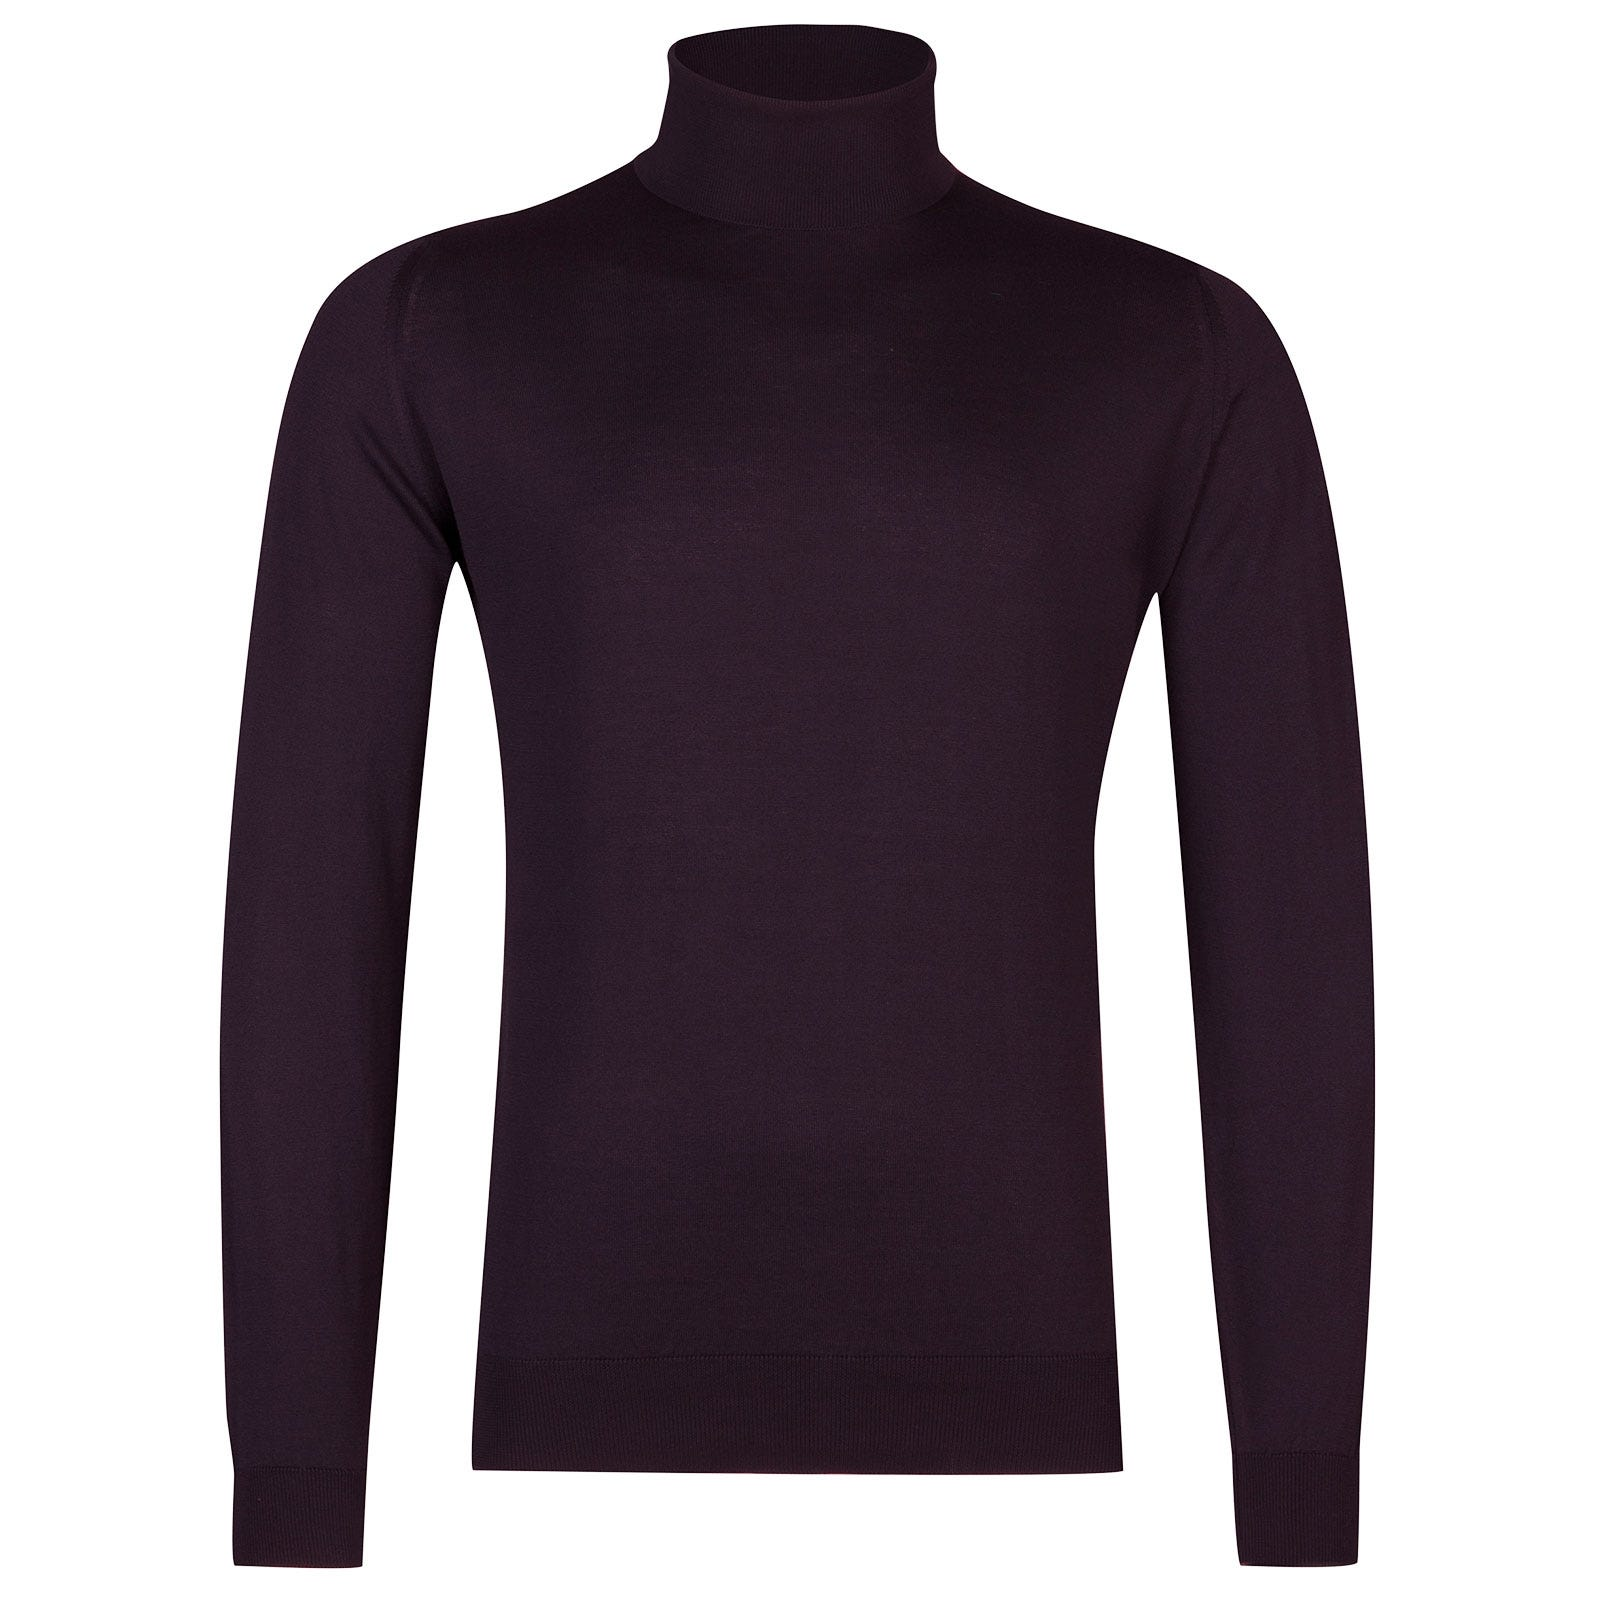 John Smedley Hawley Sea Island Cotton Pullover in Mystic Purple-M